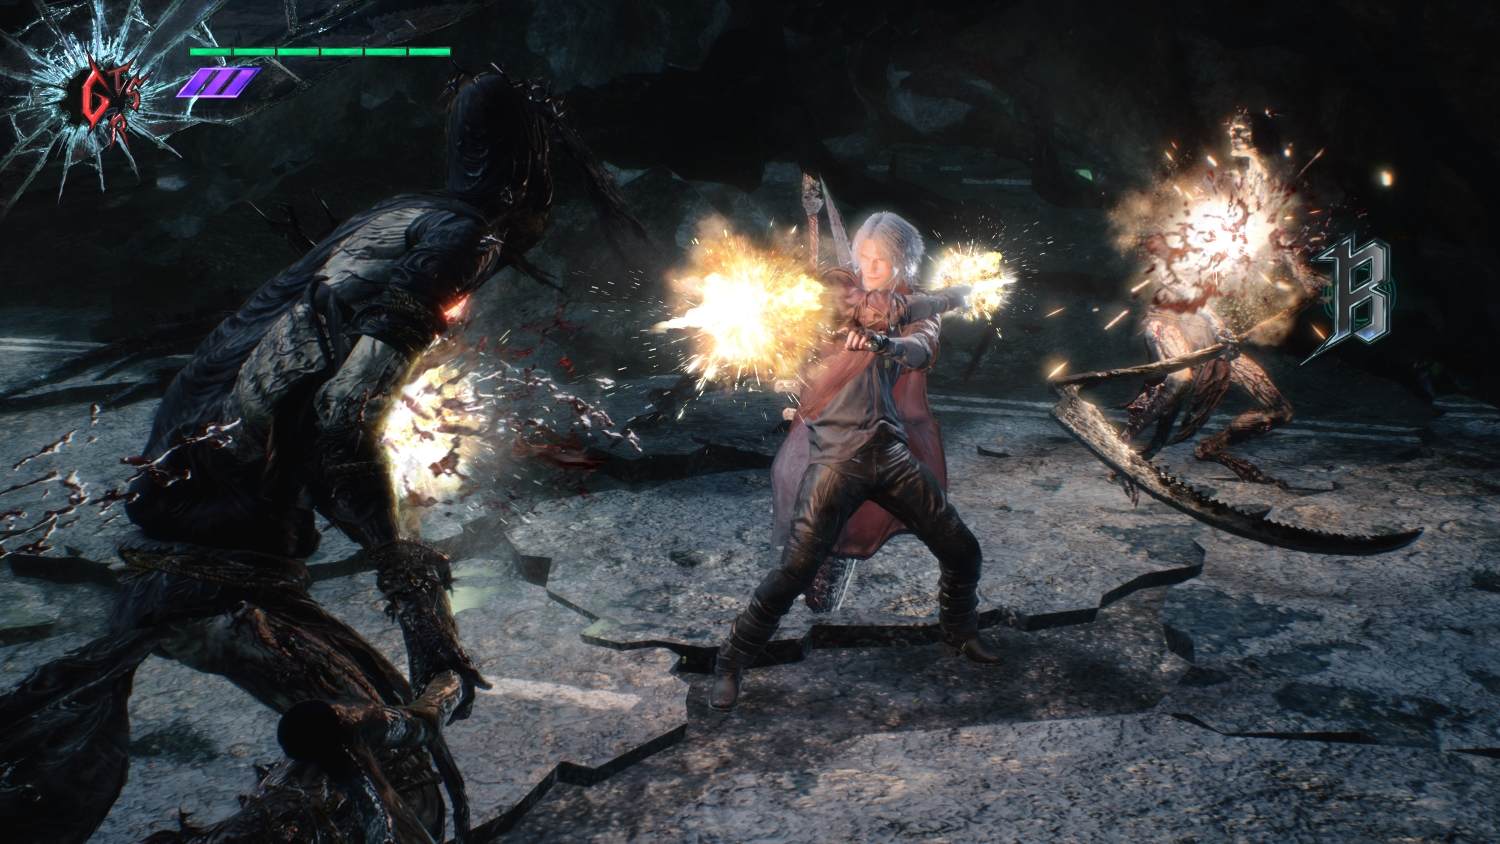 Devil May Cry 5 (PS4) - Dante, and friends, are back